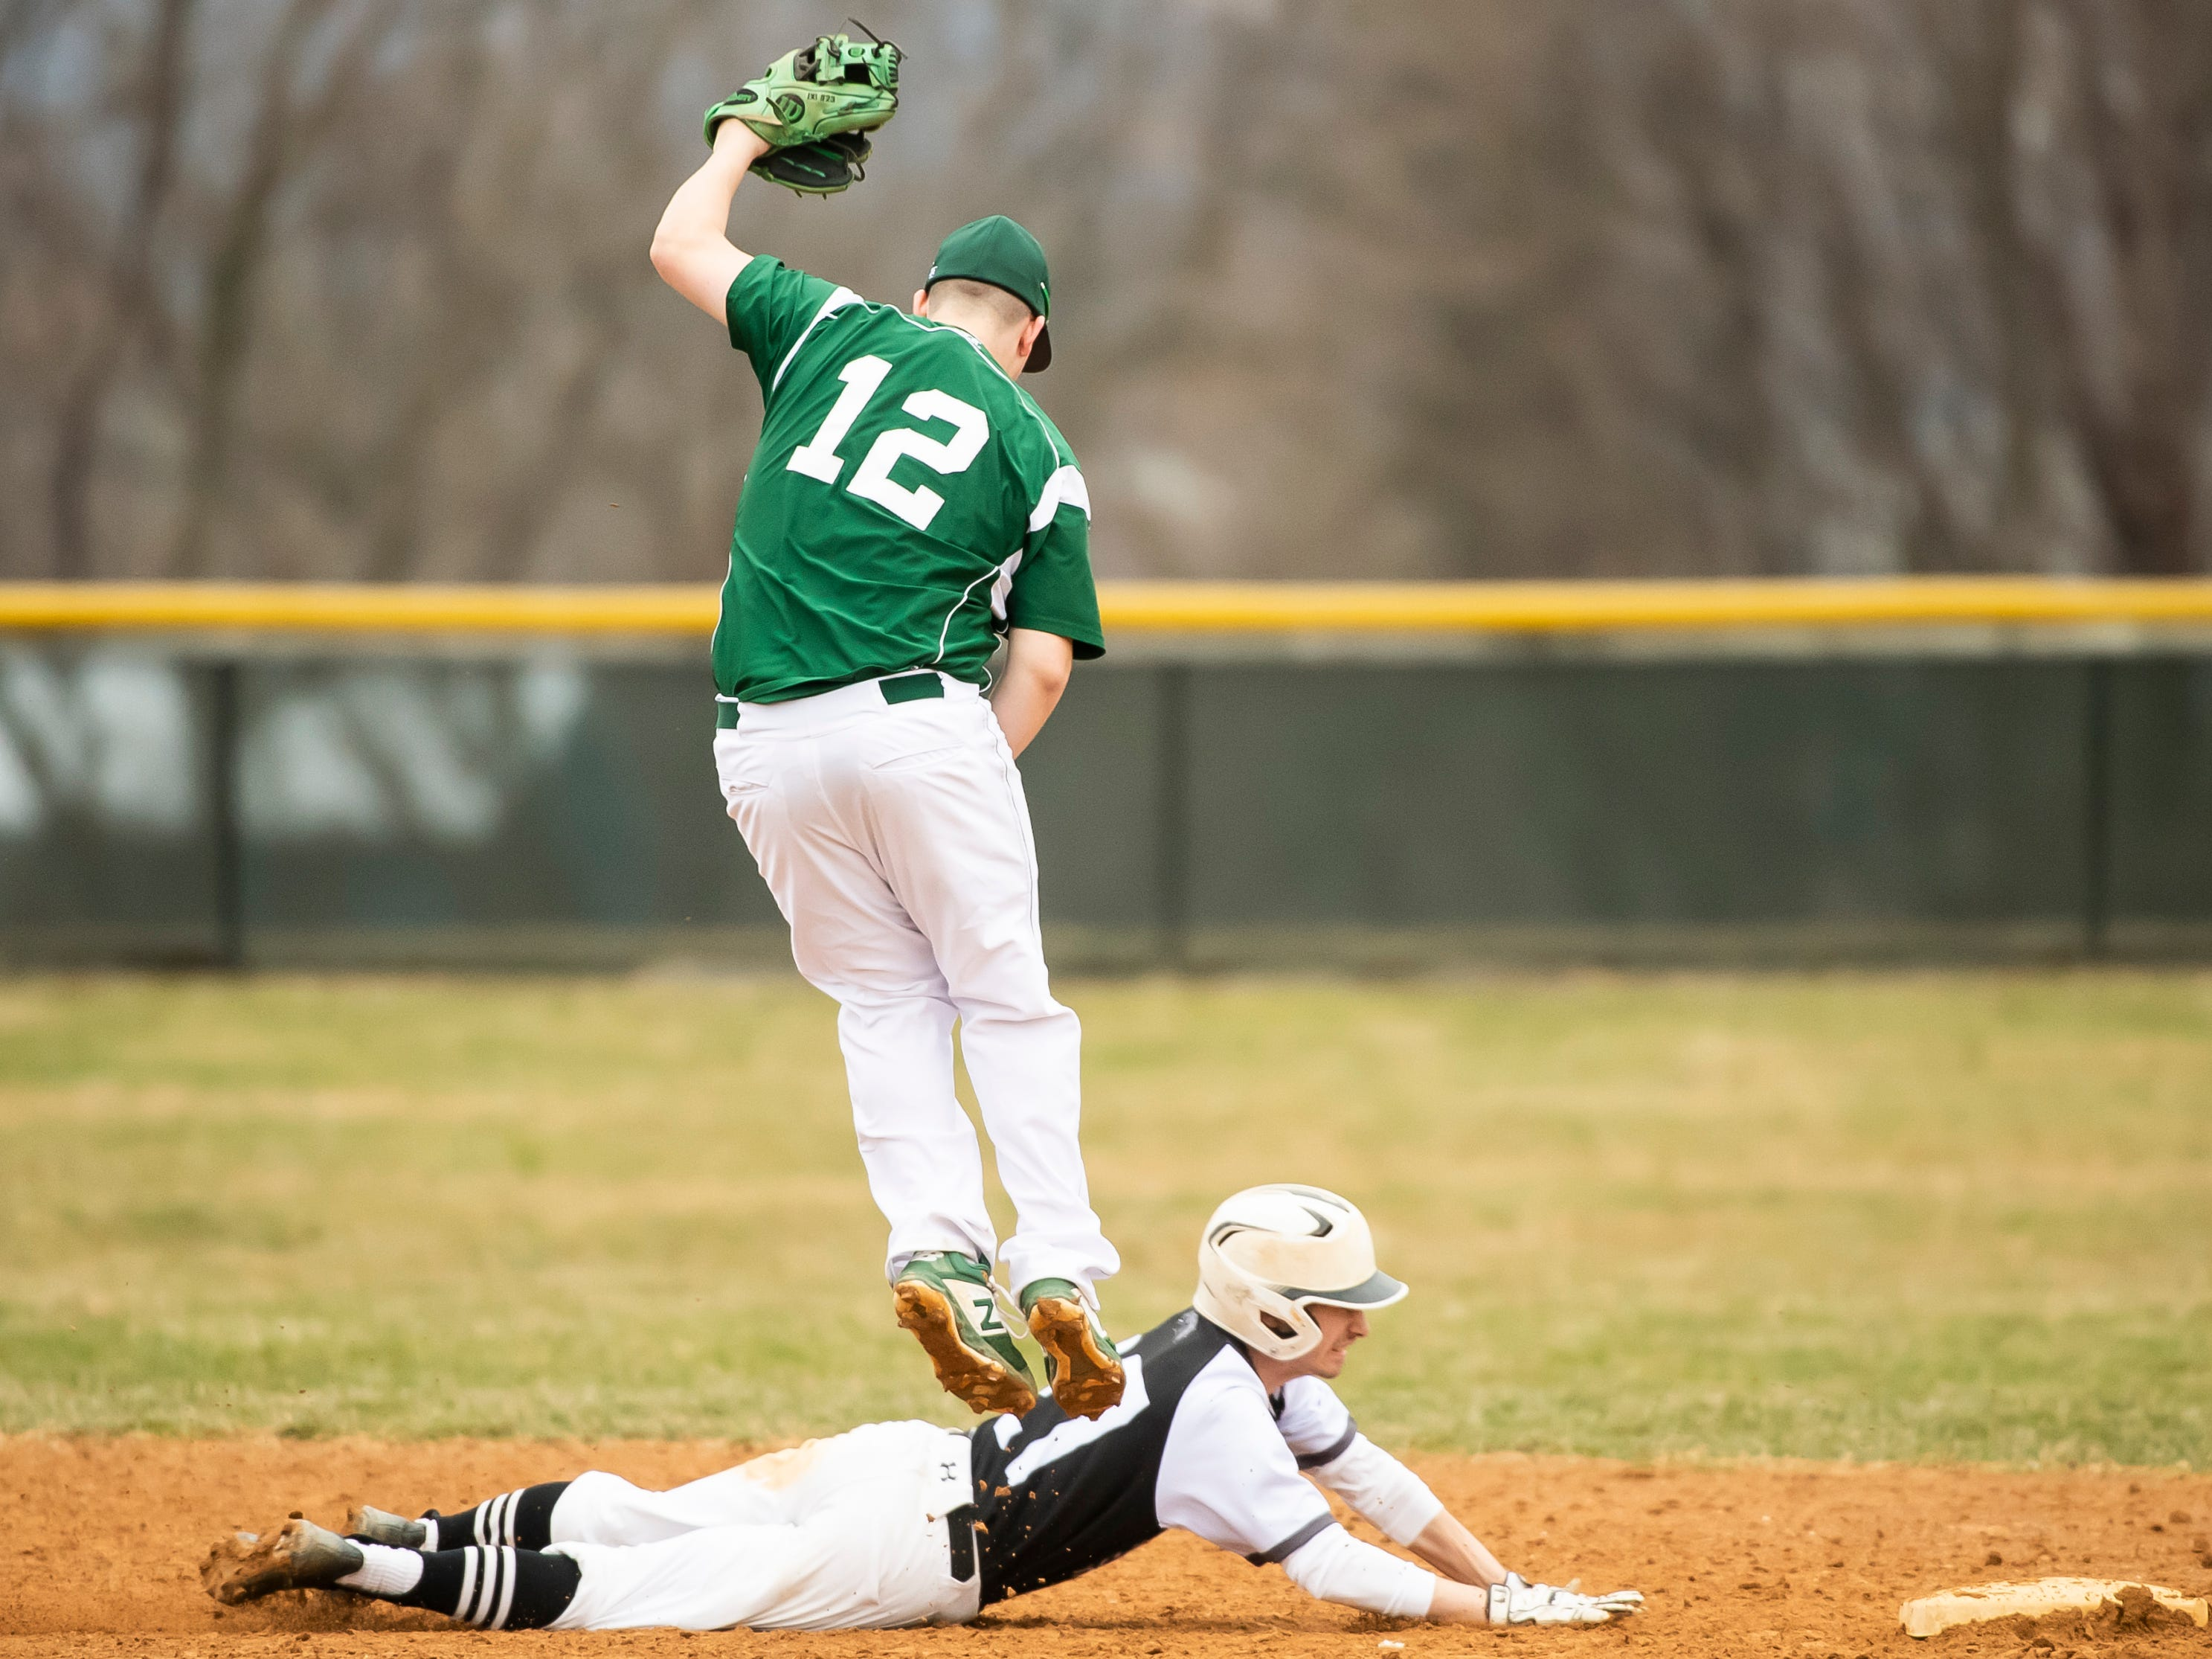 South Western's Alex Klingler dives safely back into second base during a game against Carlisle in Hanover on Friday, March 29, 2019. The Mustangs won 11-9.